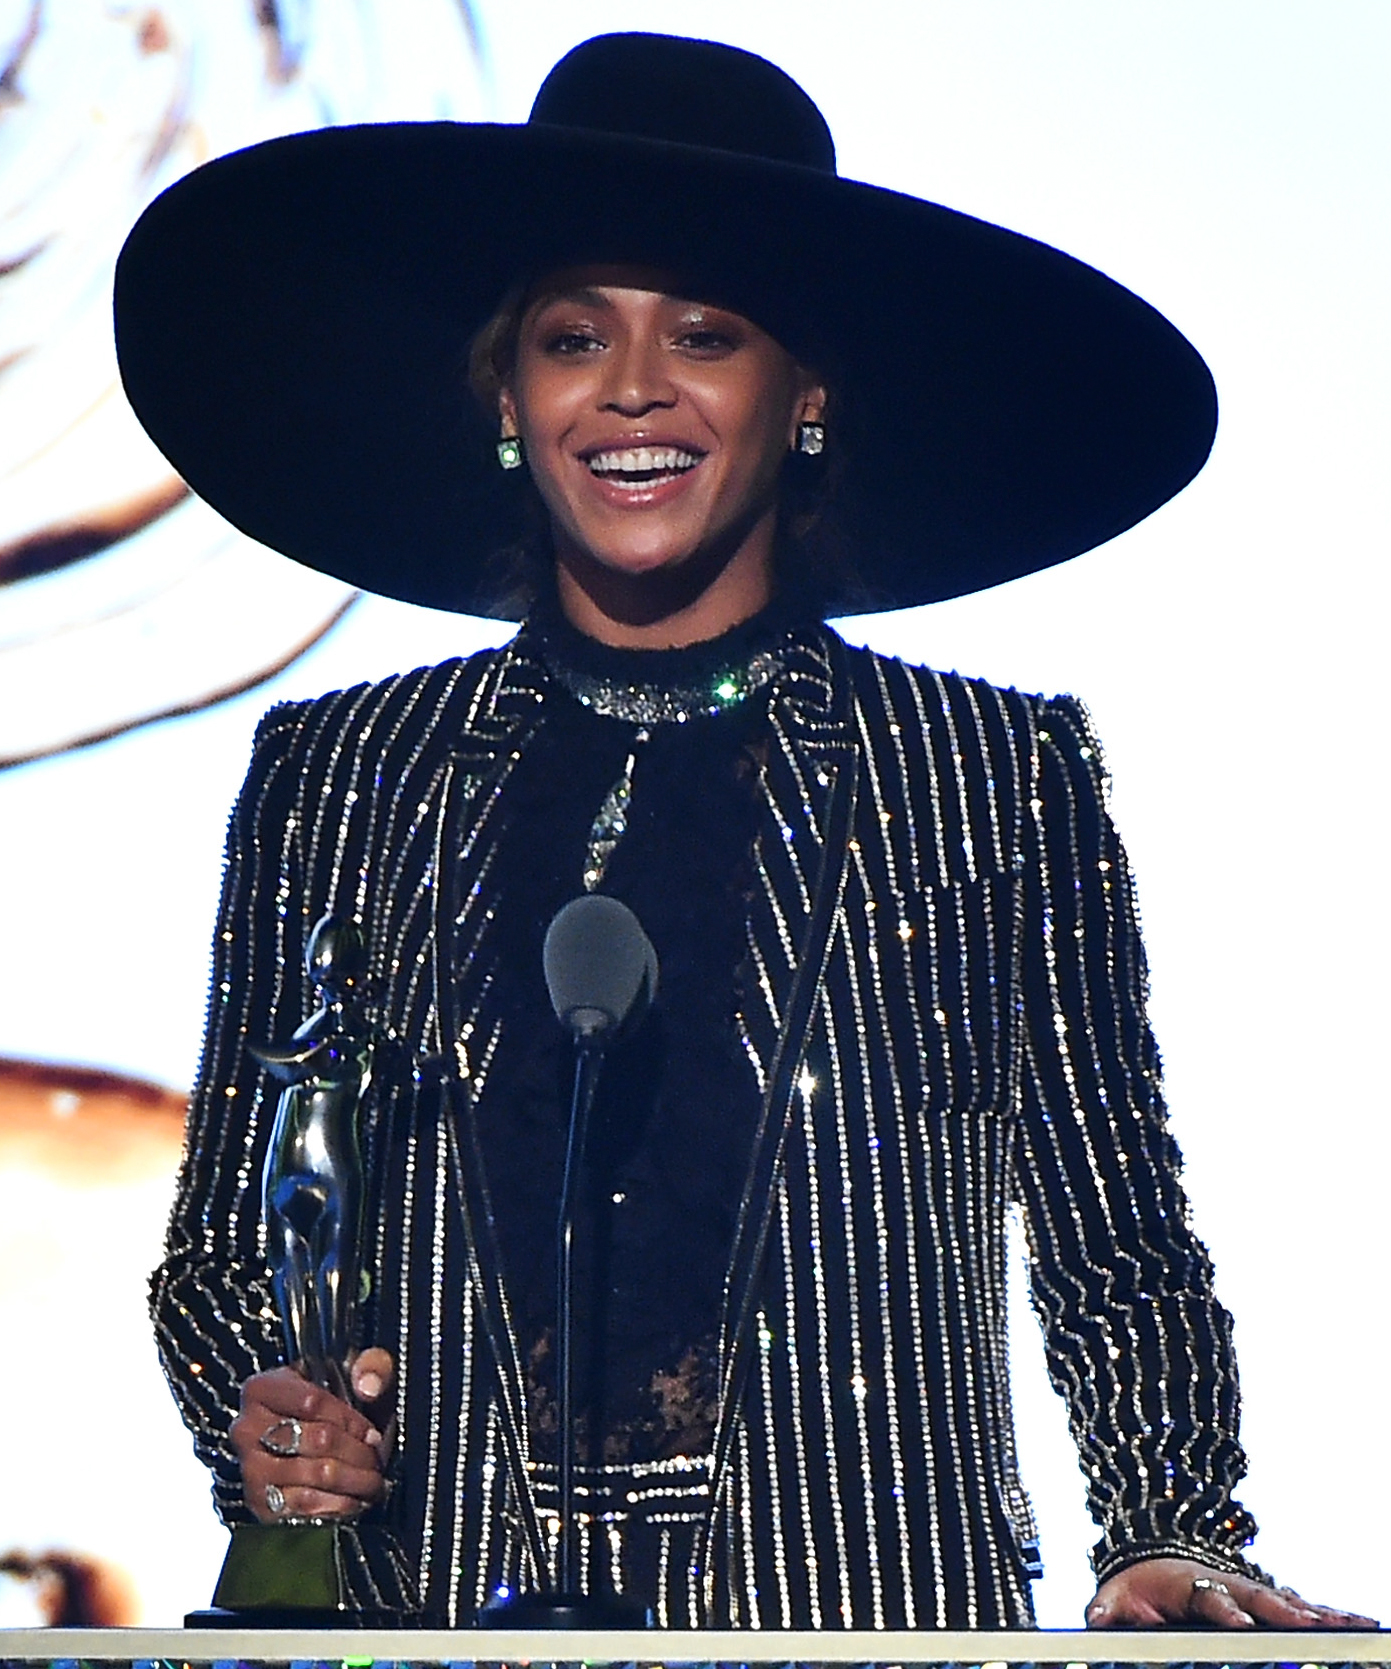 Beyoncé Wins CFDA's Fashion Icon Award and Her Touching Speech May Make You Cry